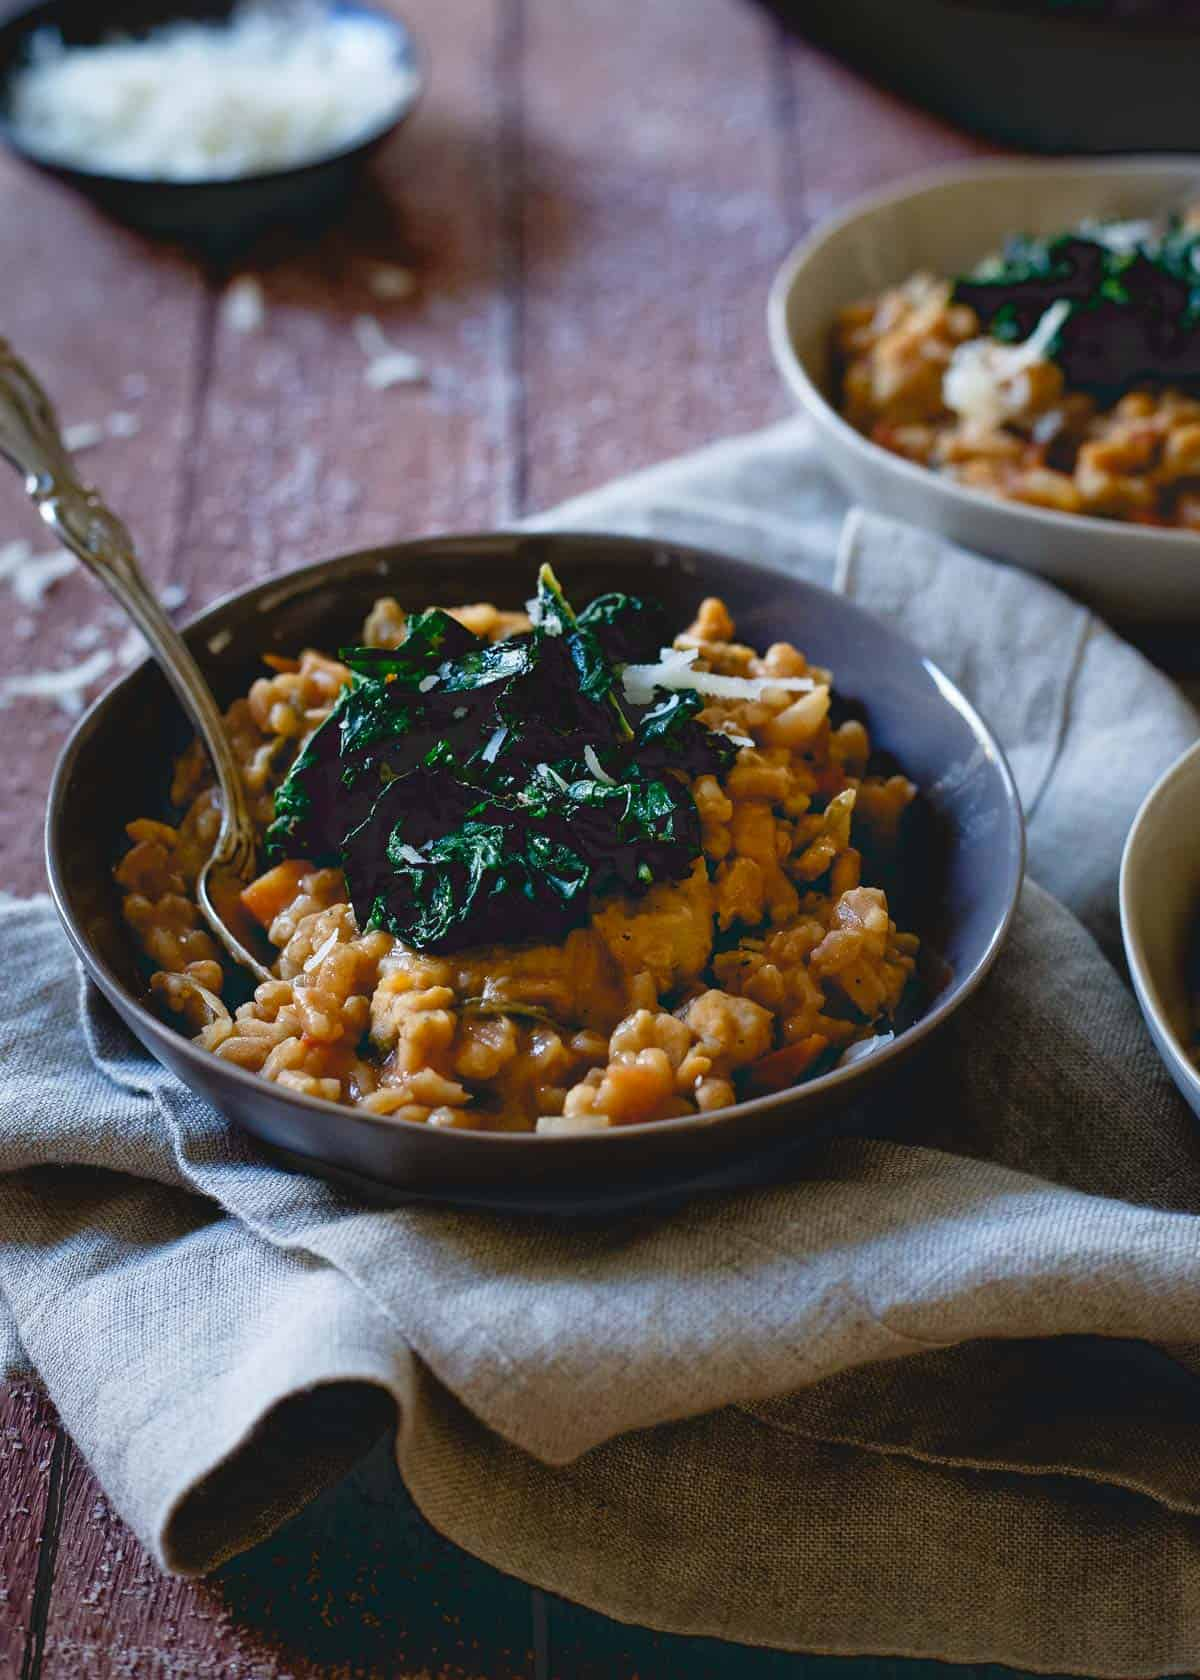 This Tuscan white bean farro risotto uses white bean soup for a warm, comforting and hearty dish perfect for those cold winter months.